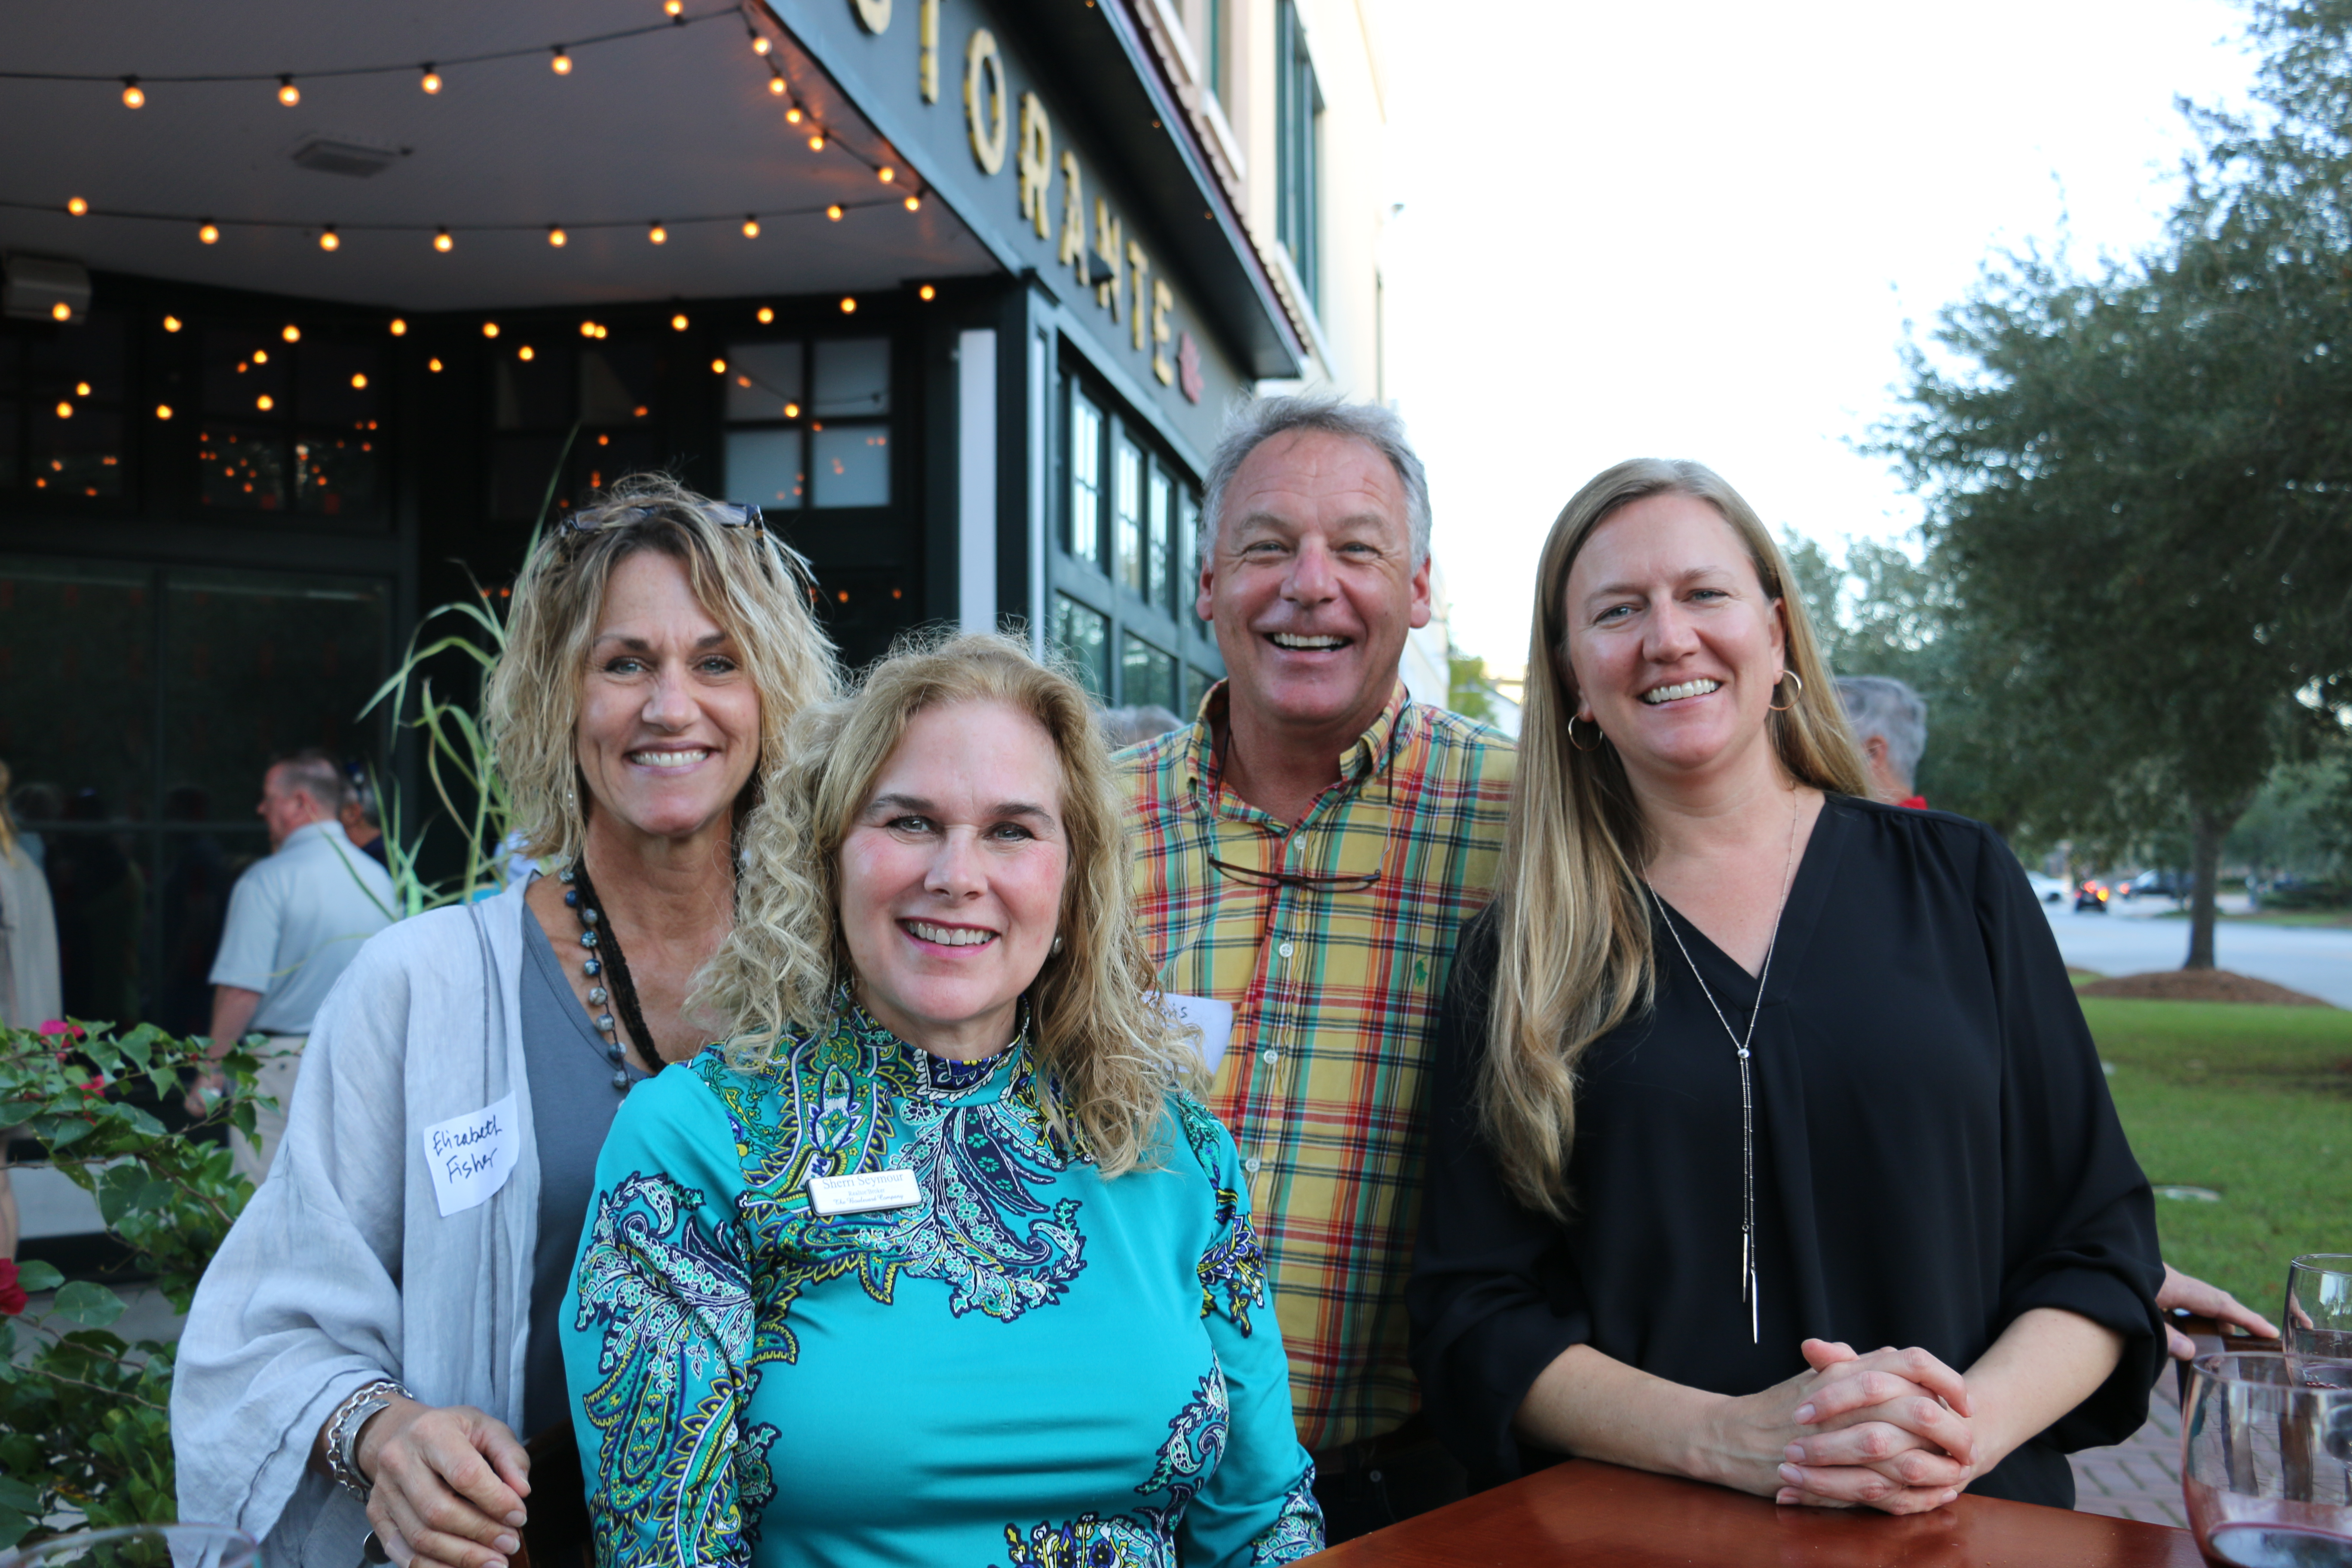 The Daniel Island Business Association (DIBA) held its monthly block party for members and guests at Ristorante LIDI. Among those enjoying a beautiful evening on the patio were, from left, Elizabeth Fisher, Sherri Seymore, Chris Fisher and Samantha Meinders.